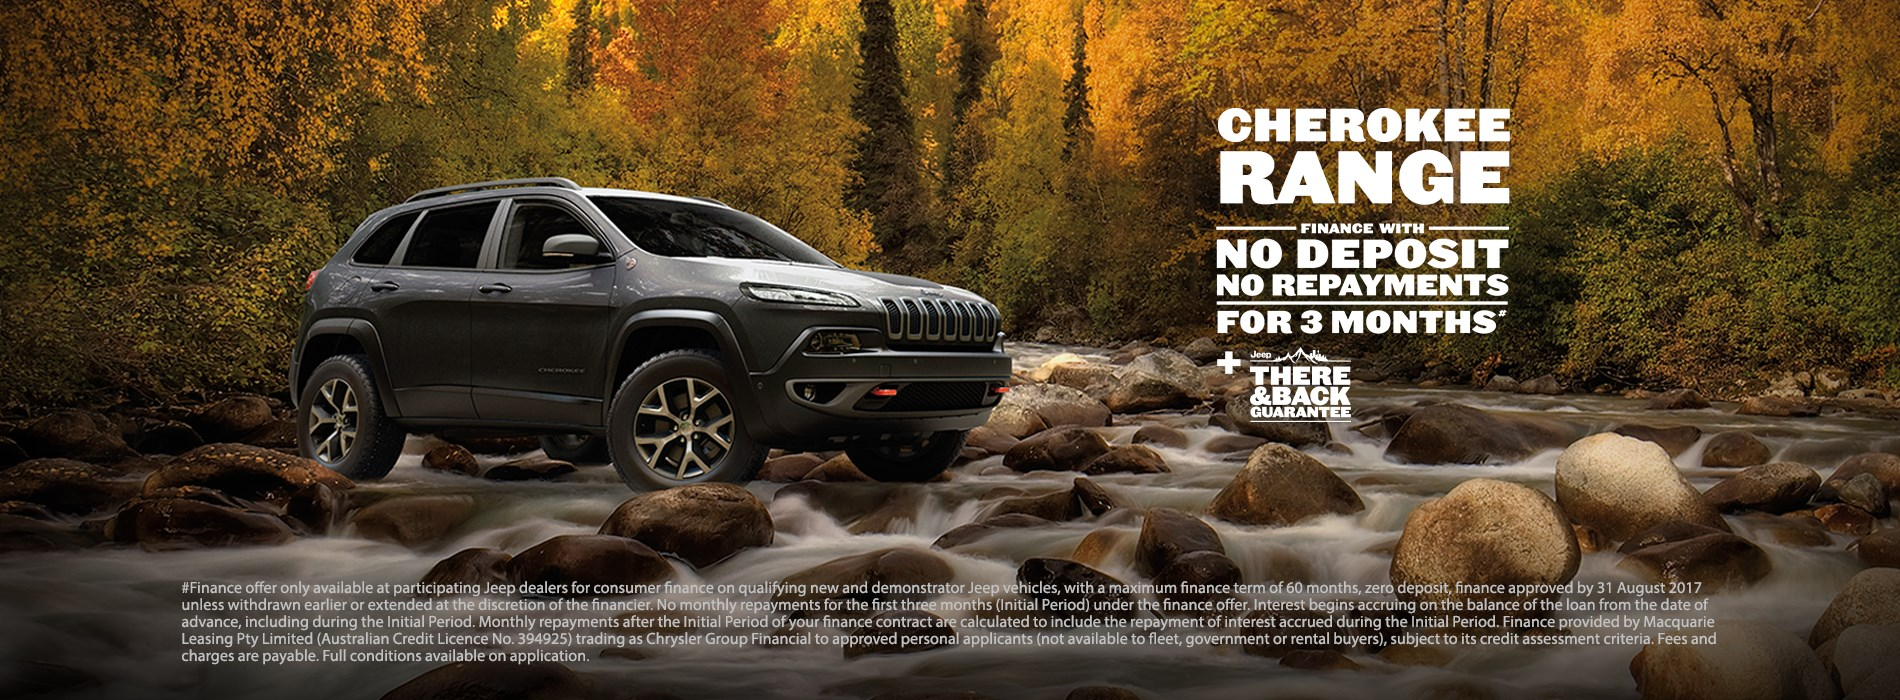 Jeep Cherokee Range Finance Offer